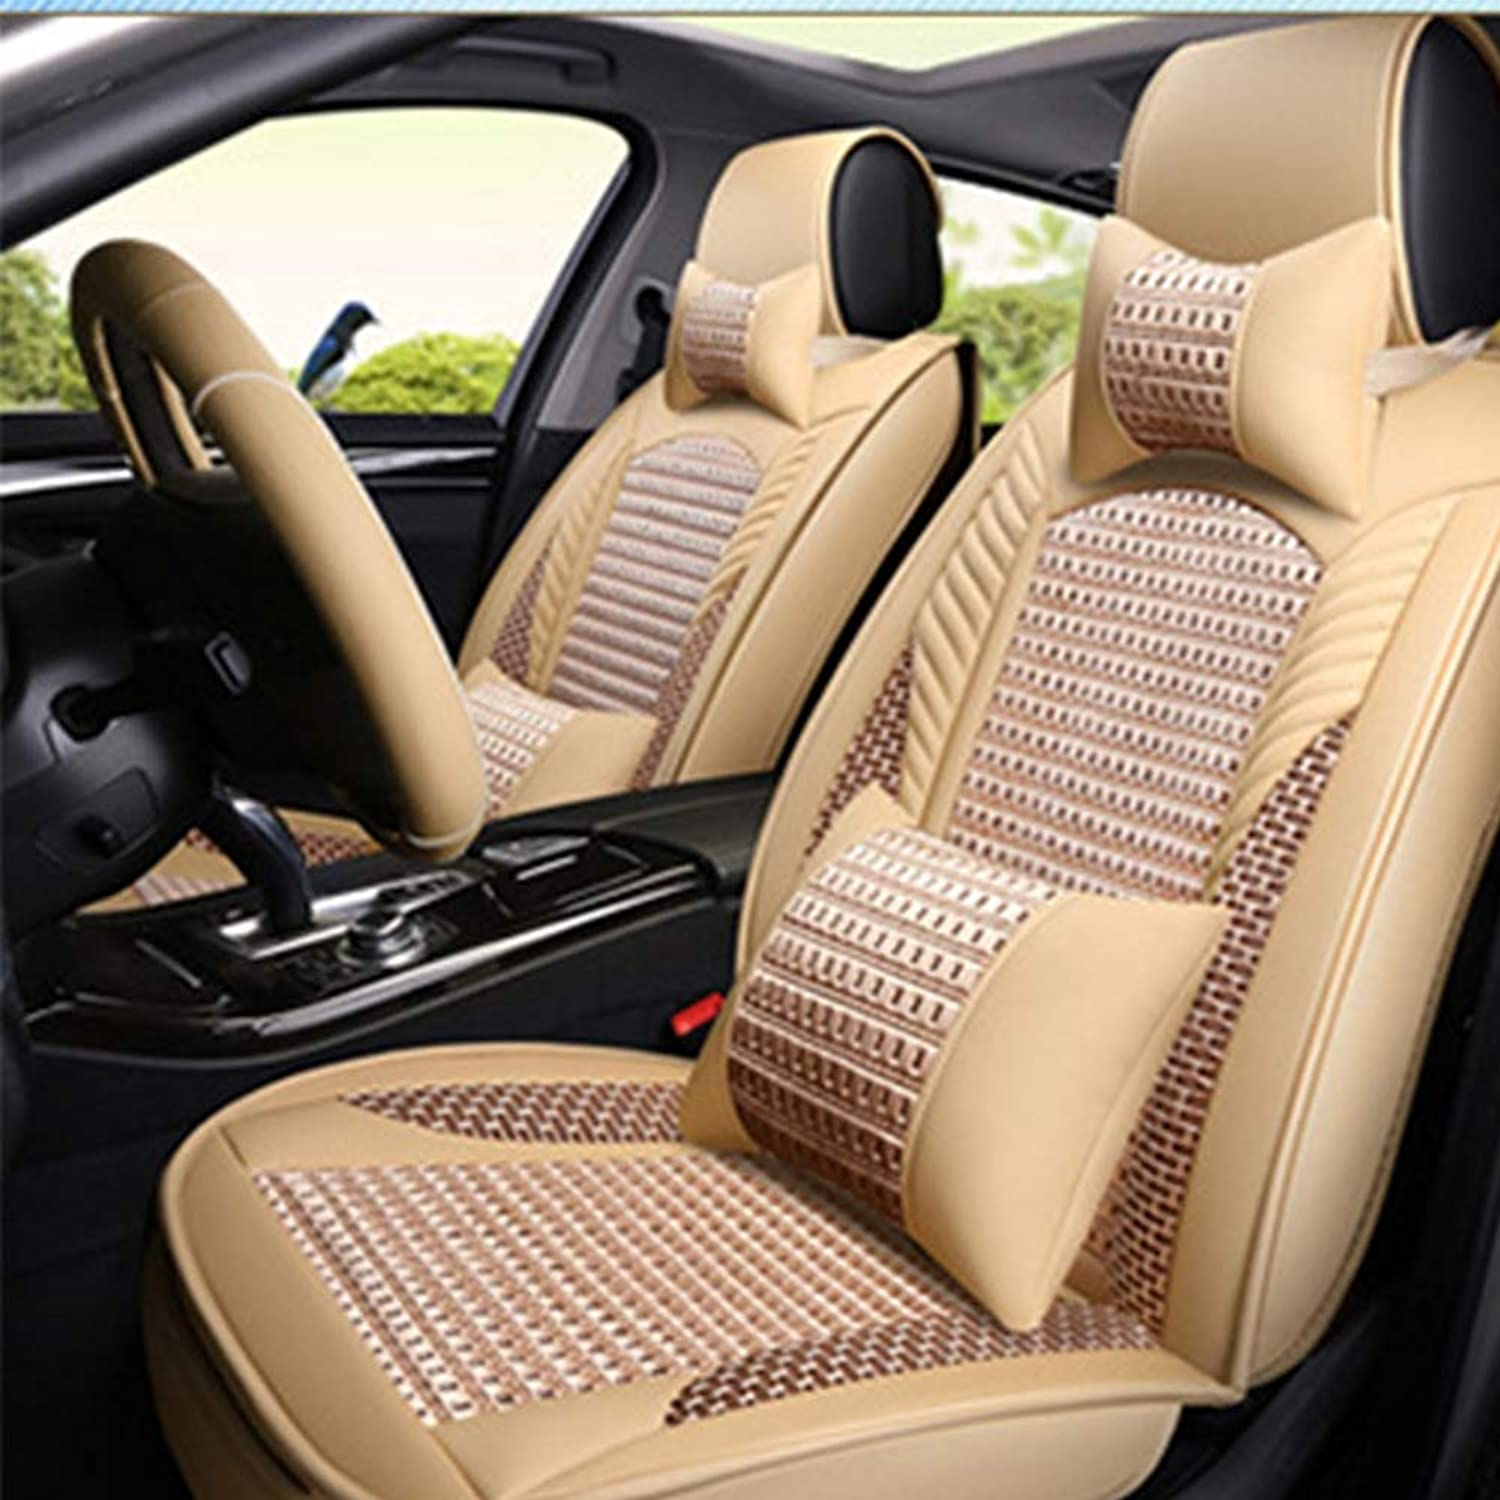 Car Seat Covers, Universal Seat Covers Leatherette Waterproof Breathable and Comfortable Seat Covers for Most Cars, SUV, and Vans,Beige